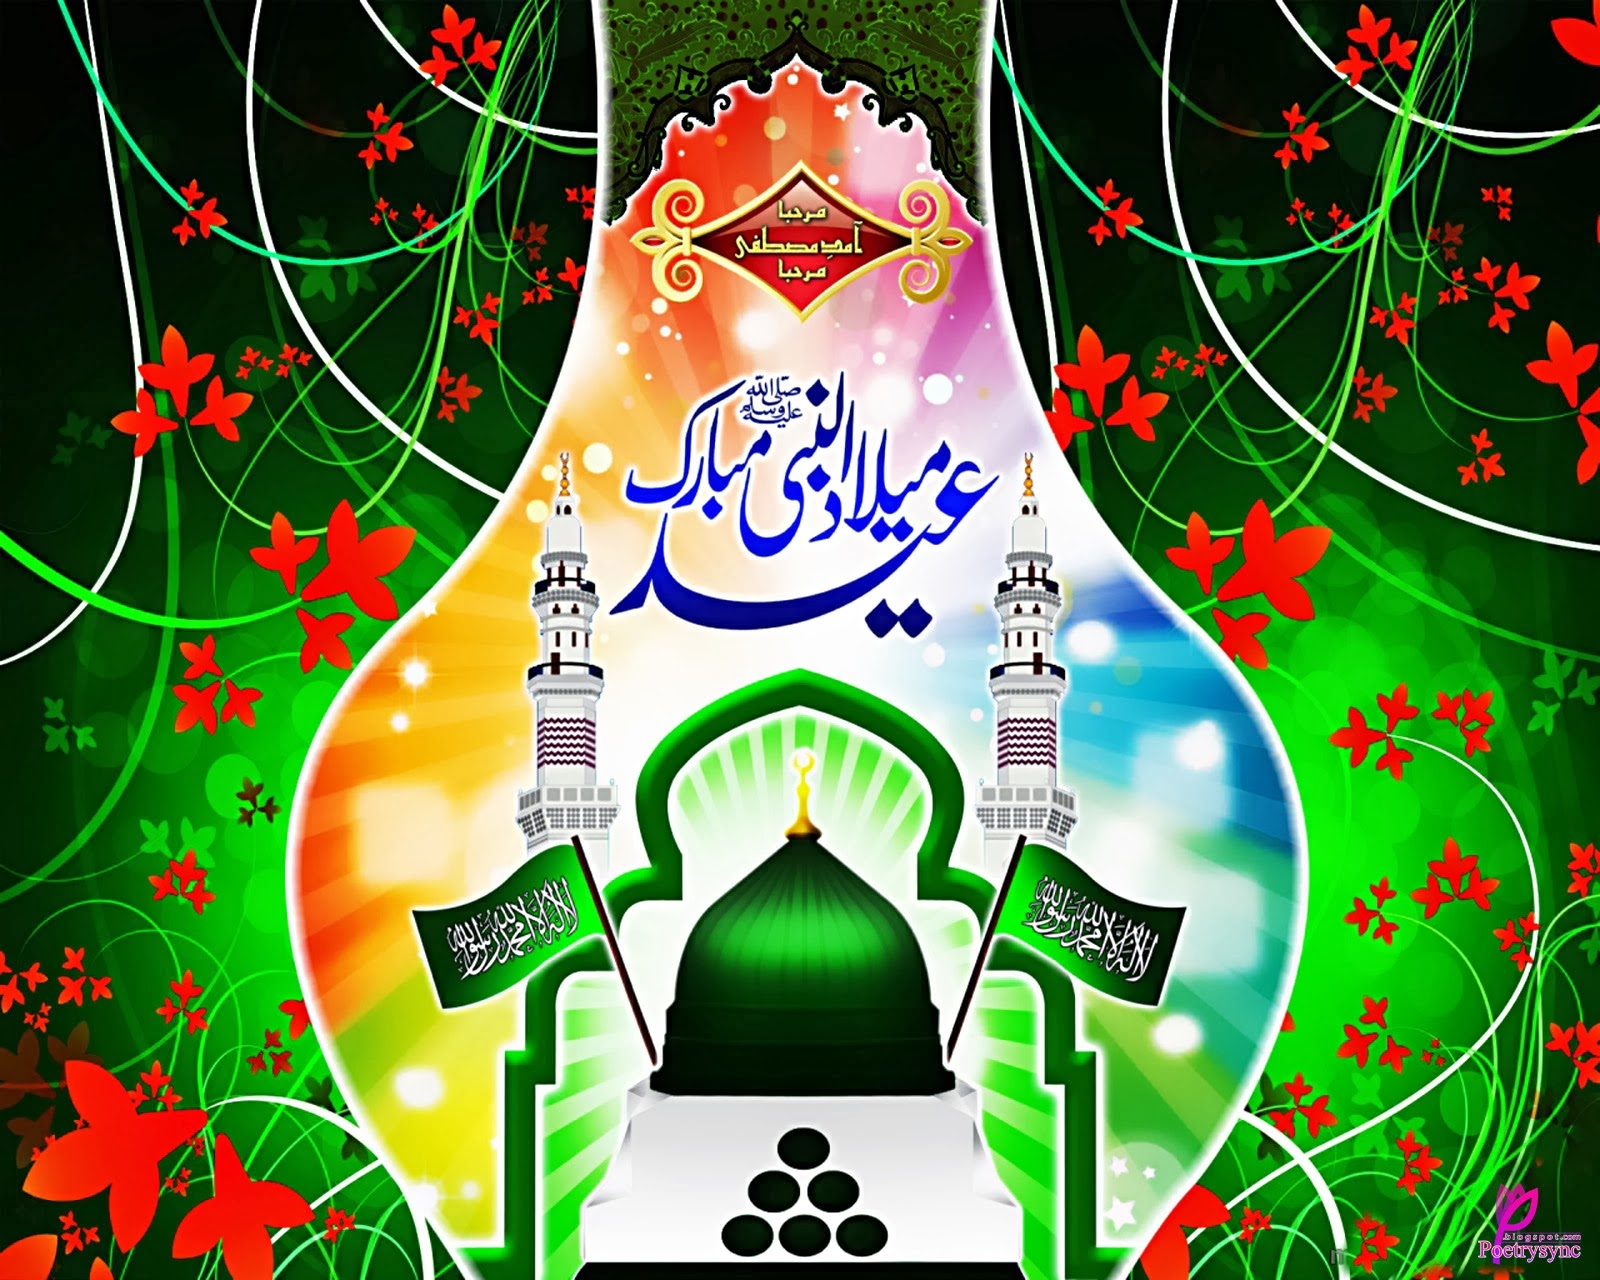 Eid milad un nabi wallpaper with wishes happiness style convey my cordial sincere greetings 2 u ur family on the occasion of milad un nabi the auspicious day on which prophet hazrat mohammad pbuh made his kristyandbryce Choice Image